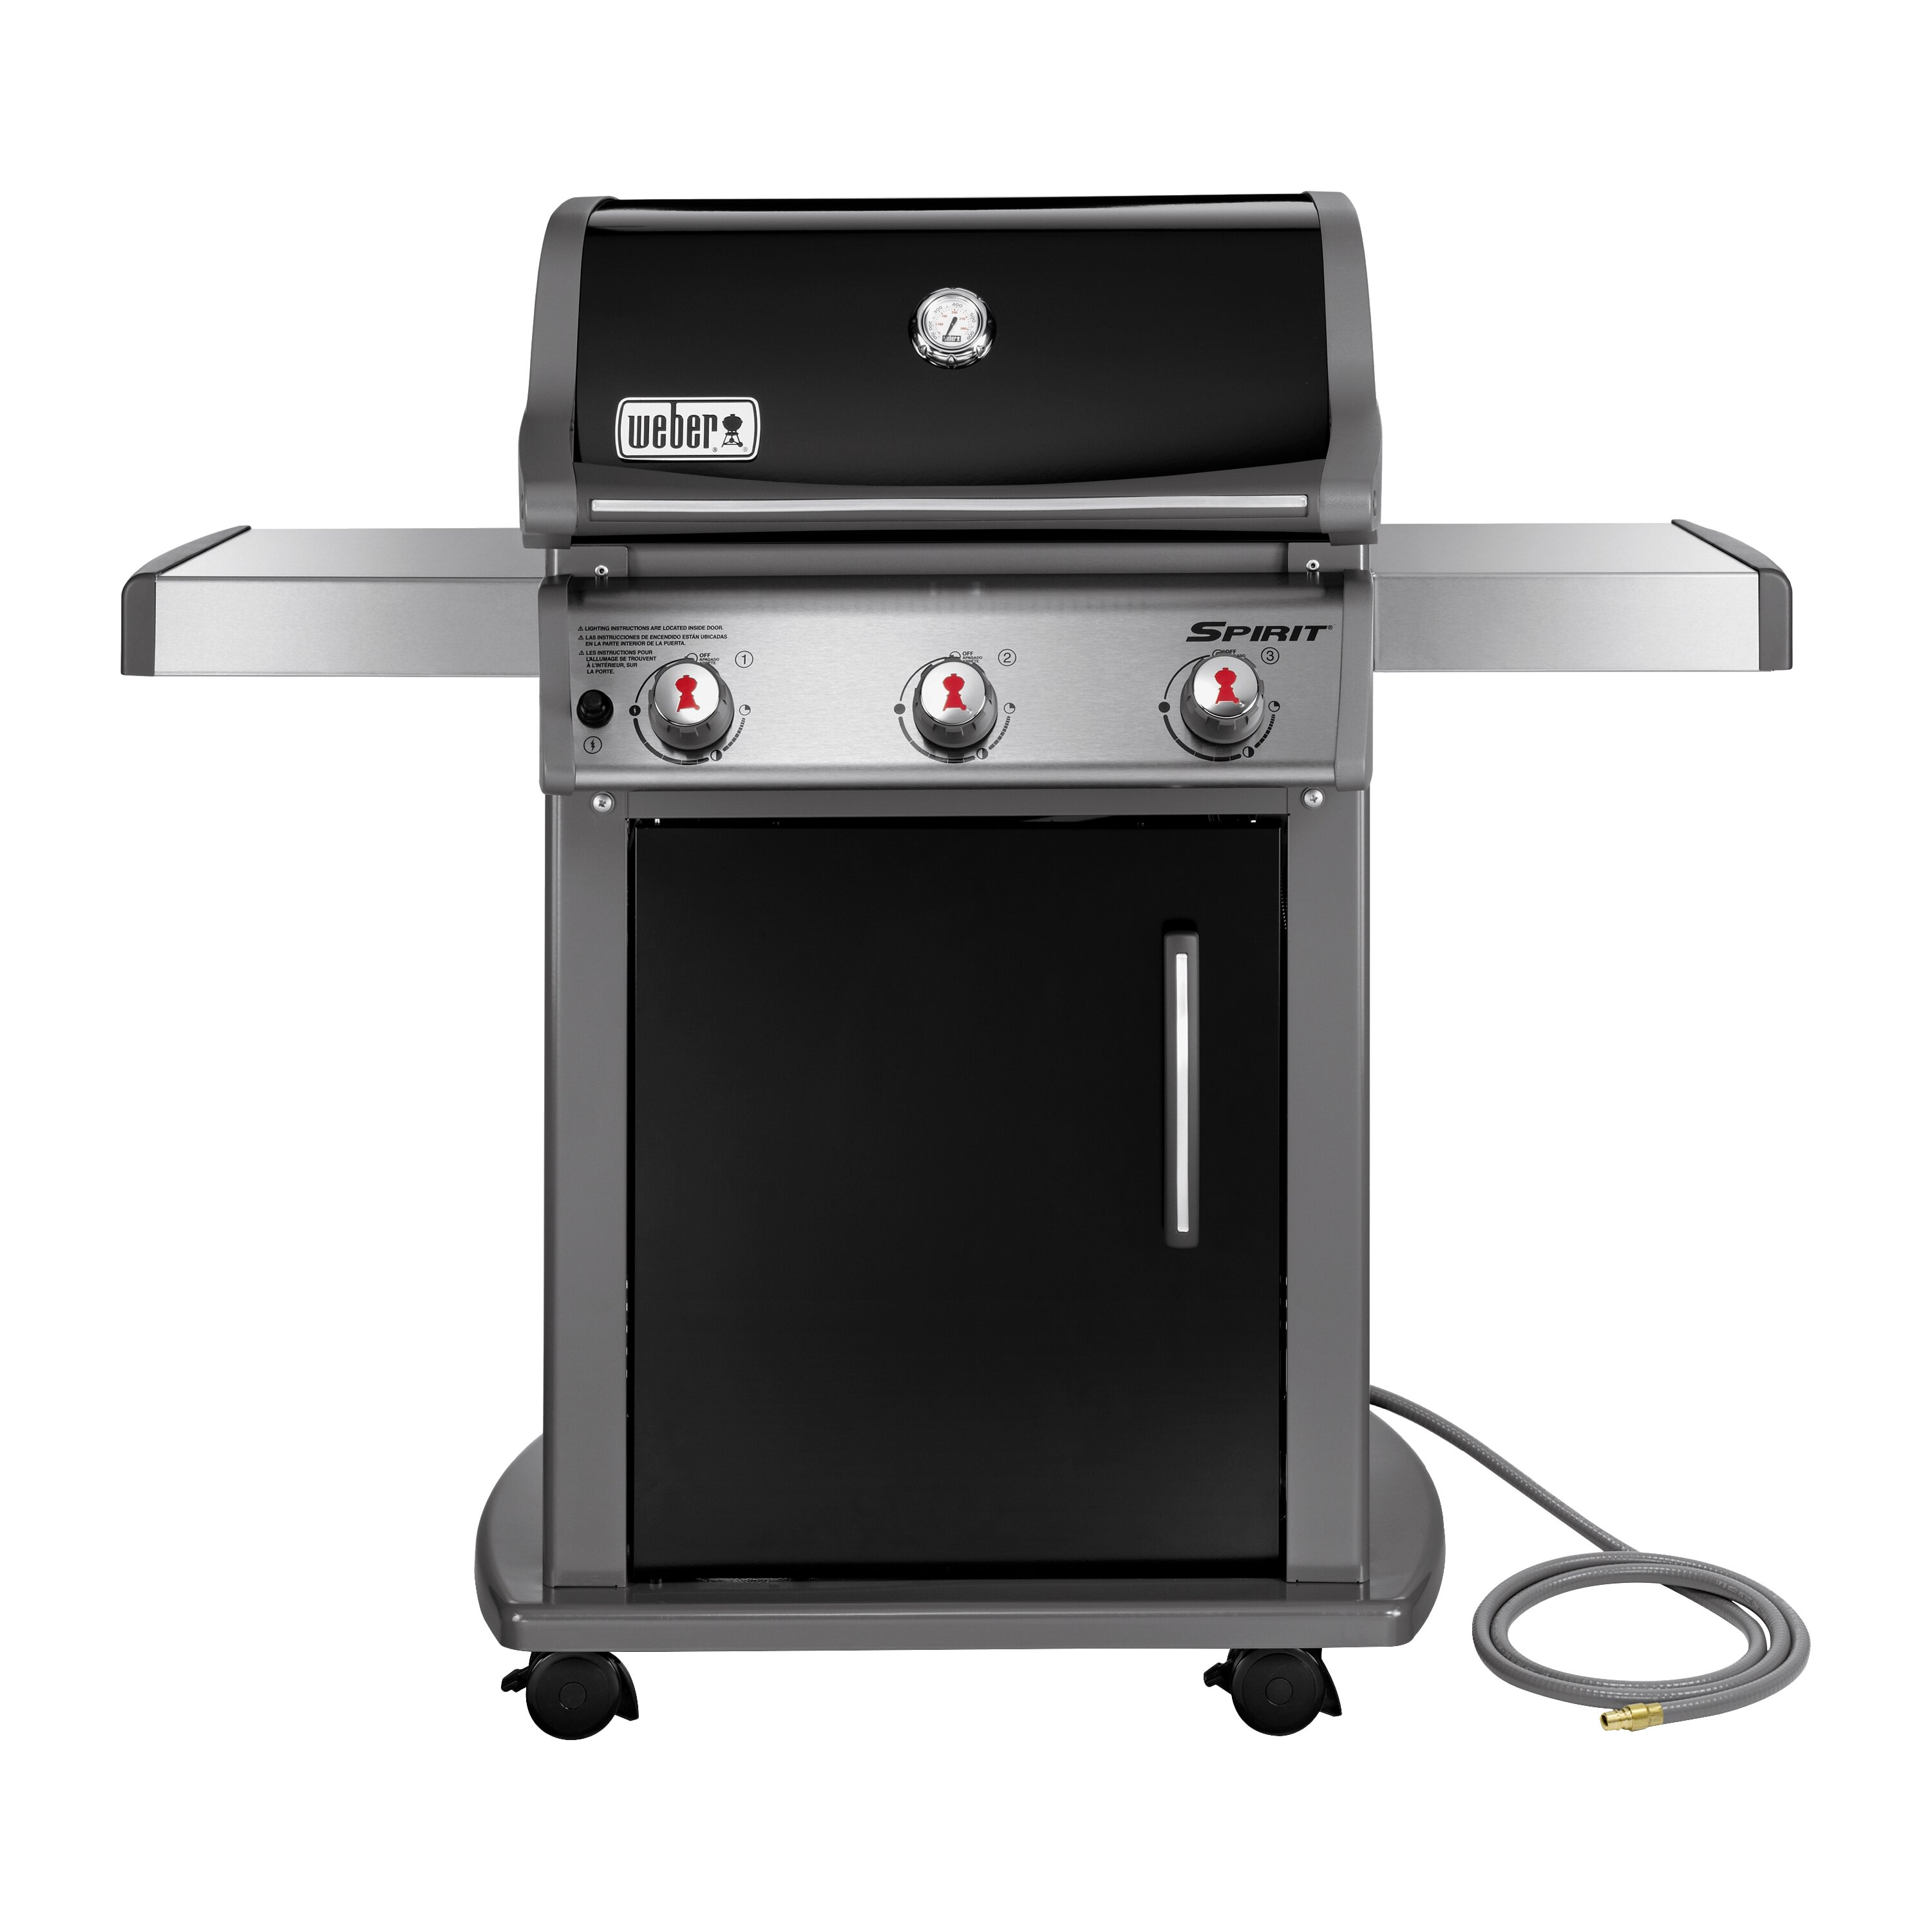 weber spirit e 310 natural gas grill reviews wayfair. Black Bedroom Furniture Sets. Home Design Ideas